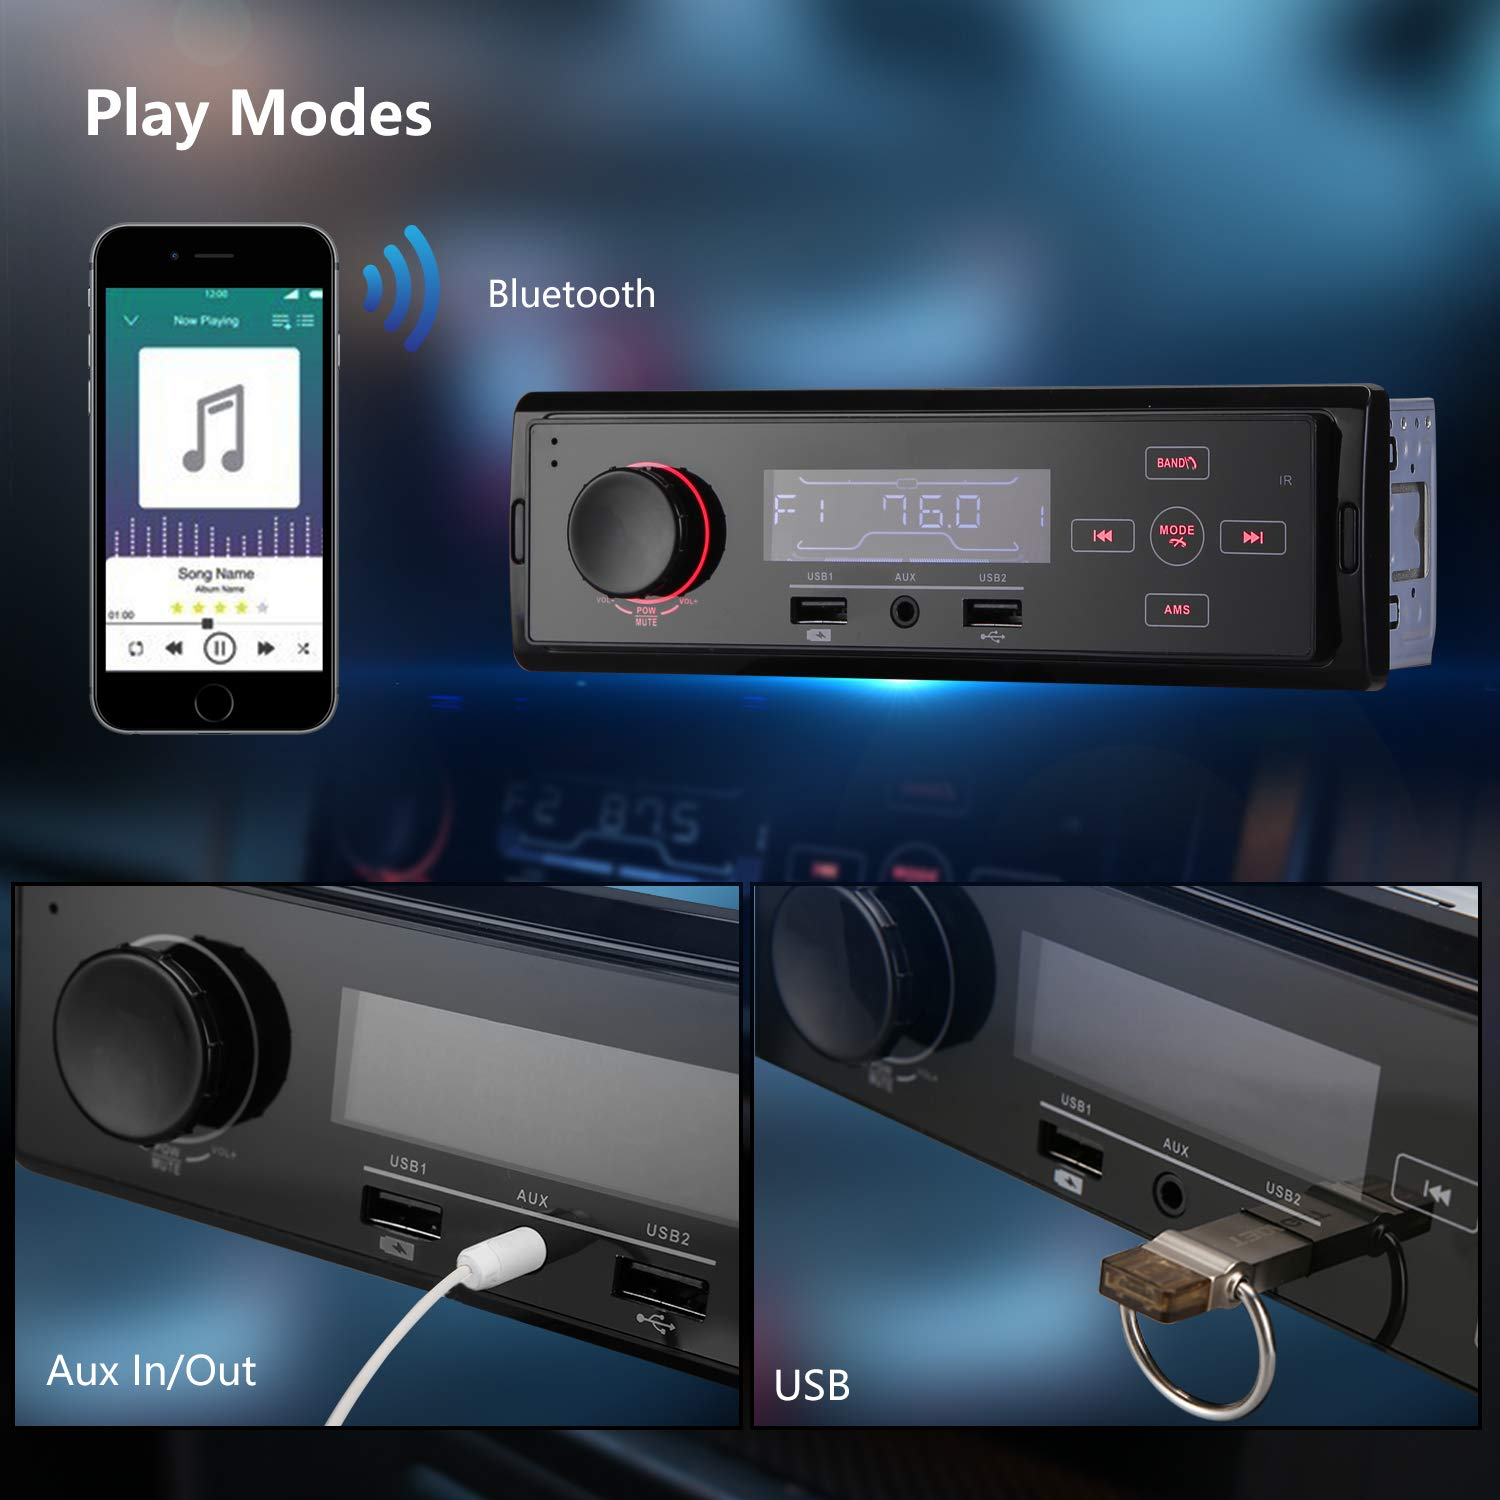 Autoradio mit Bluetooth Freisprecheinrichtung, bedee Digital Media Receiver AM/FM/AUX/TF/USB MP3 Player Kompatibel Android und IOS Handy Control, Universal für Single-Din Auto